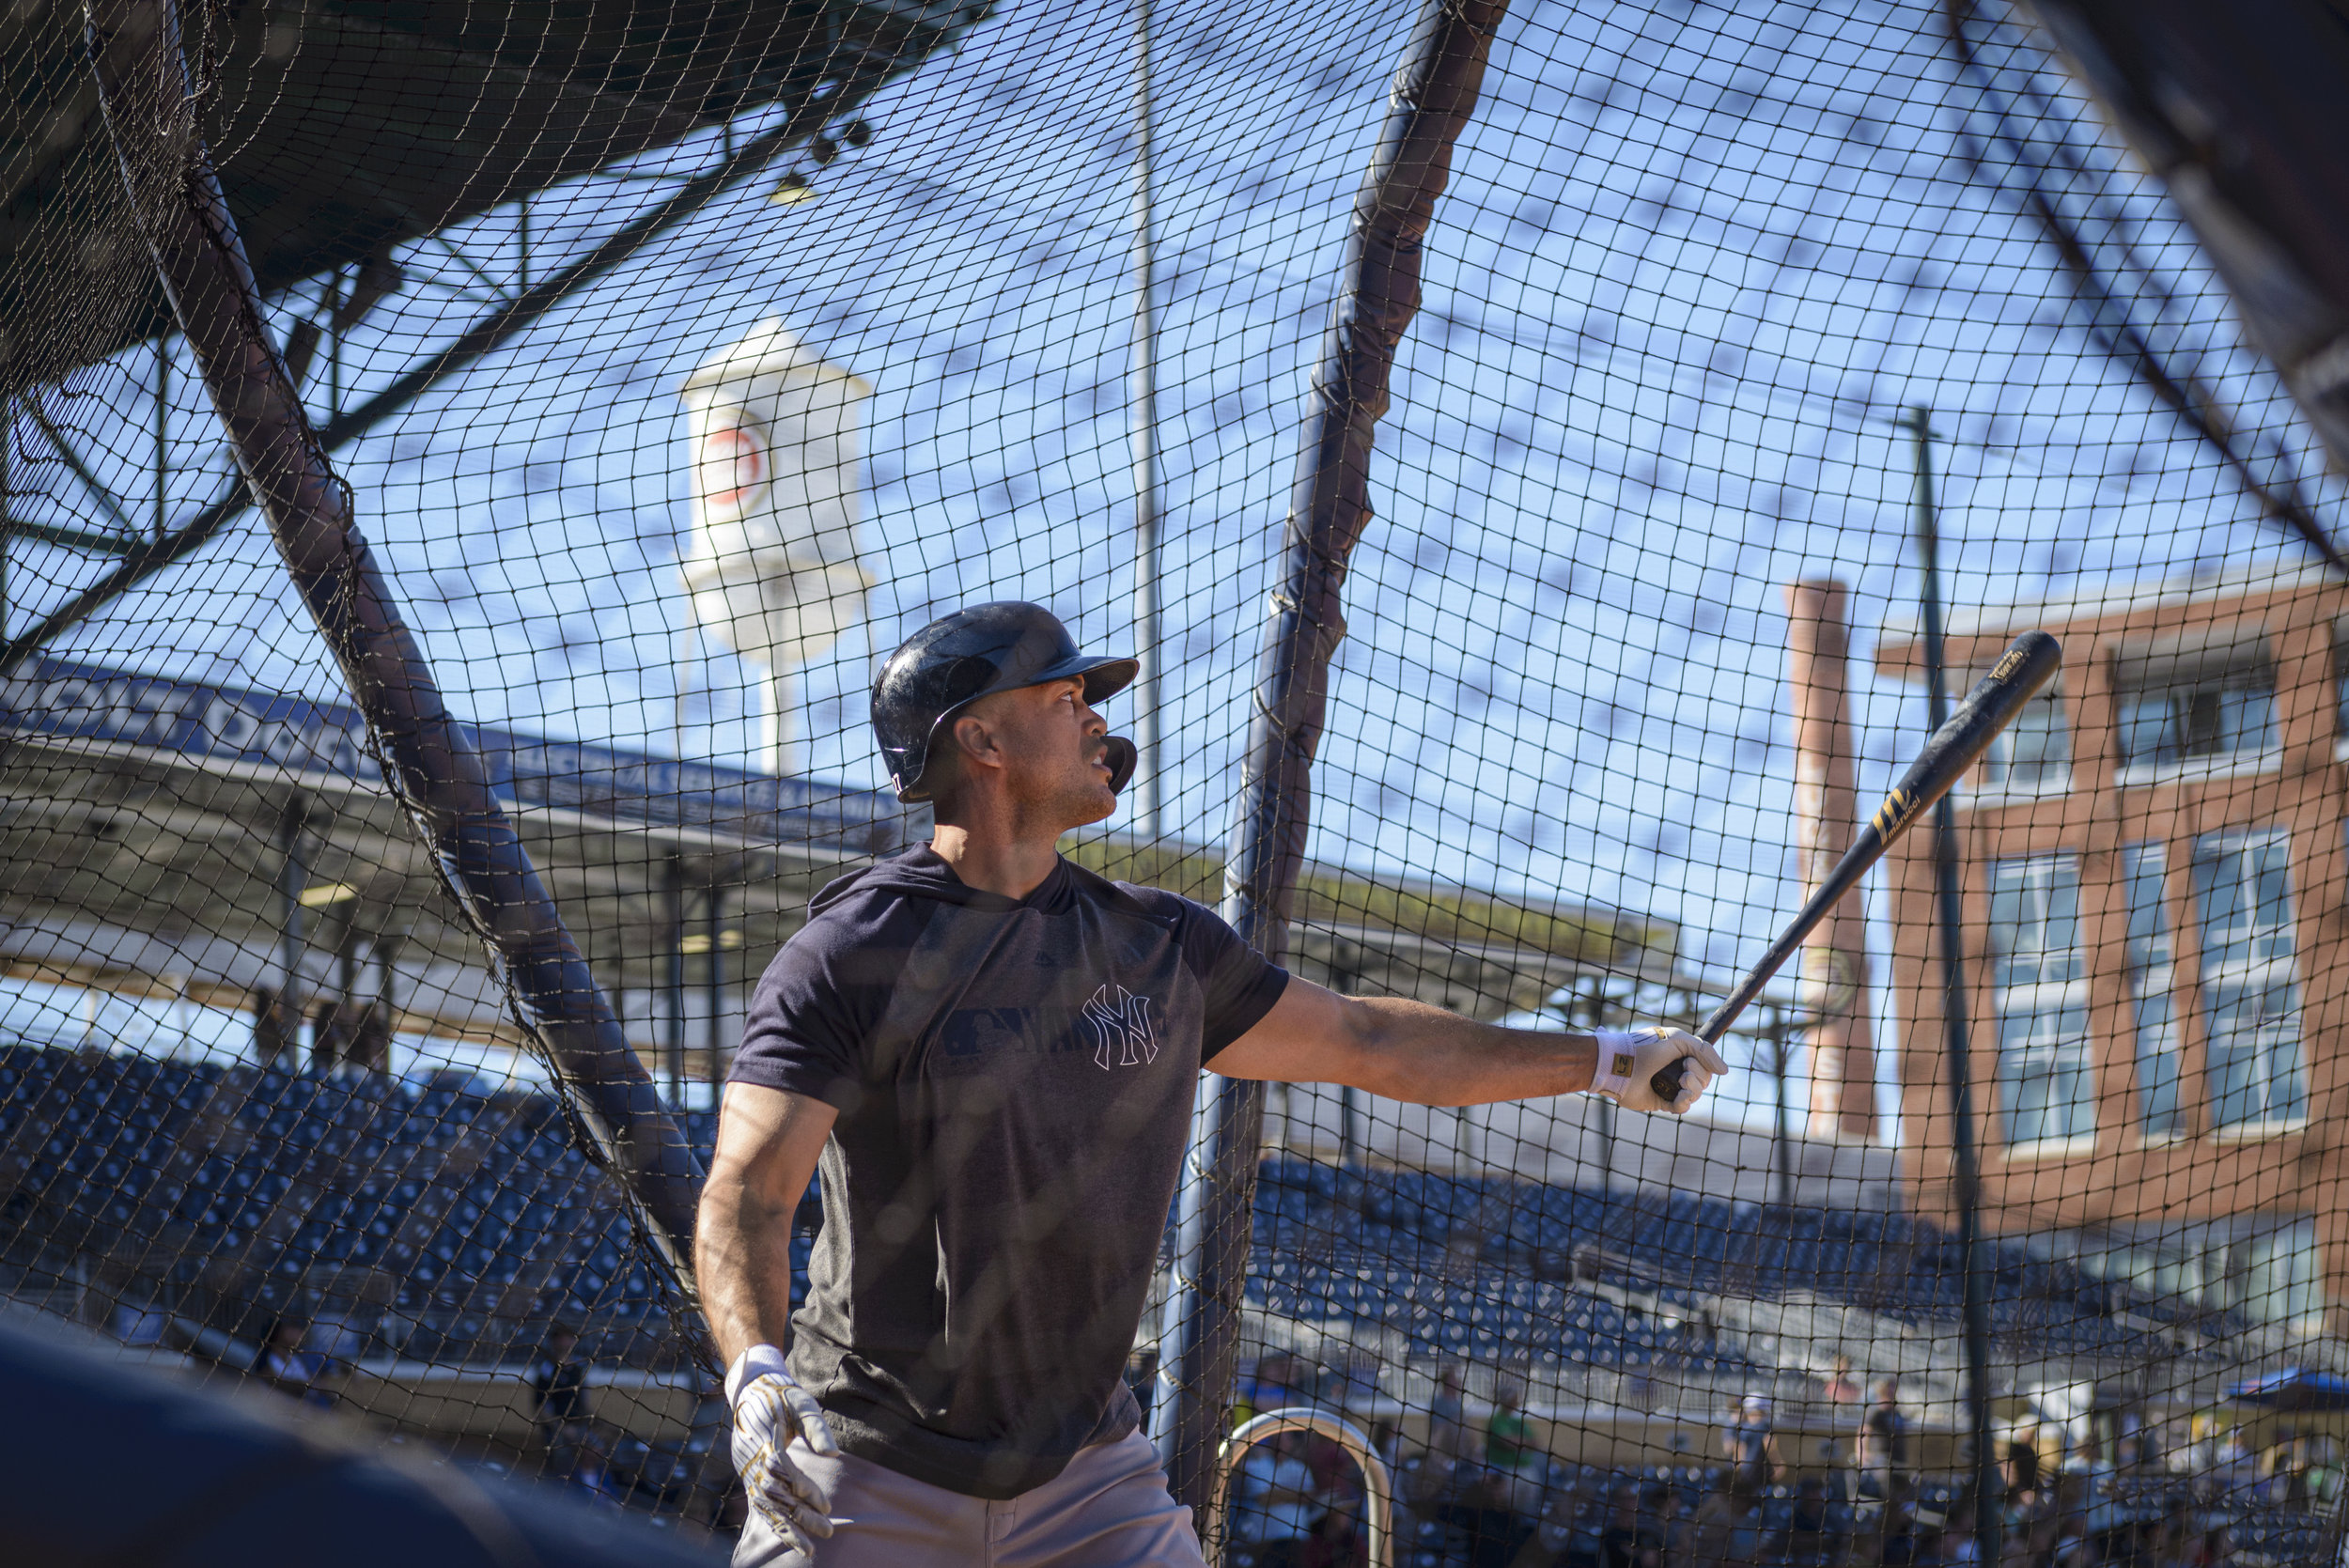 New York Yankees outfielder Giancarlo Stanton during batting practice with the Wilkes-Barre RailRiders, the Yankees' Triple-A affiliate, on June 14, 2019 at Durham Bulls Athletic Park in Durham, NC. Stanton was playing with the RailRiders on a rehab assignment.